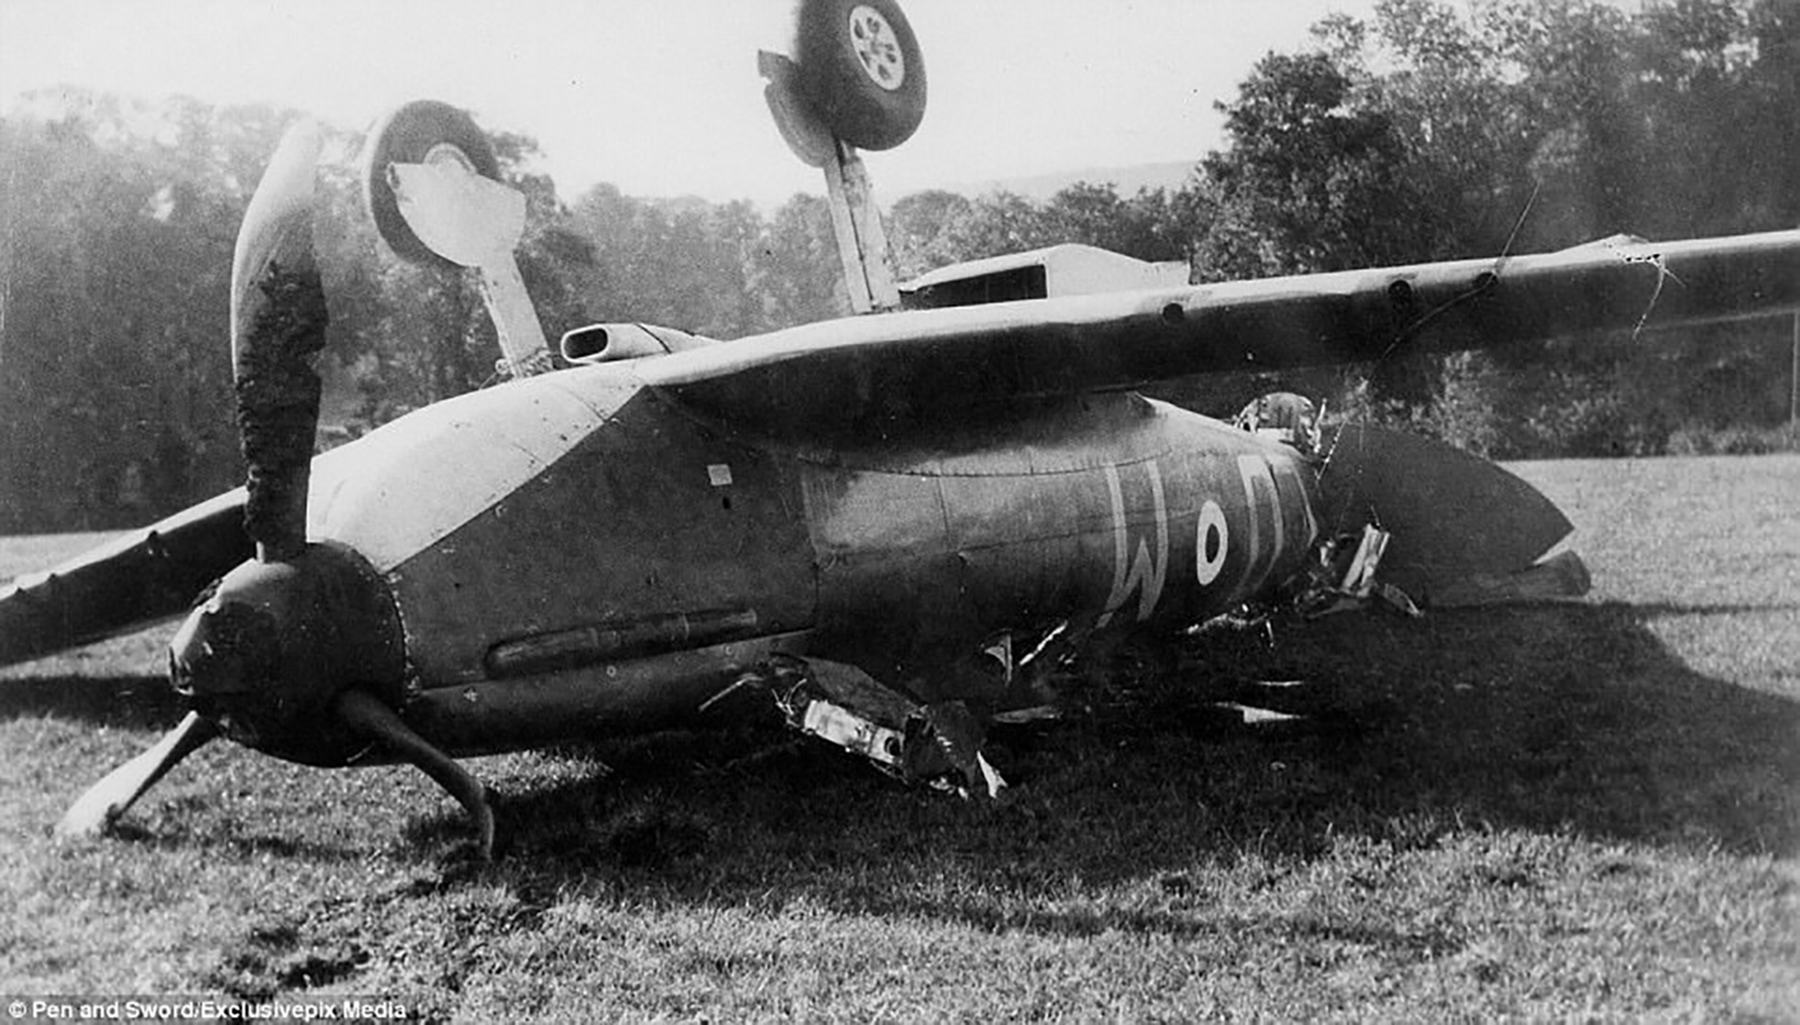 Spitfire MkIa RAF 602Sqn LOM emergency landing at Iford Hill nr Lewes East Sussex Oct 1940 01